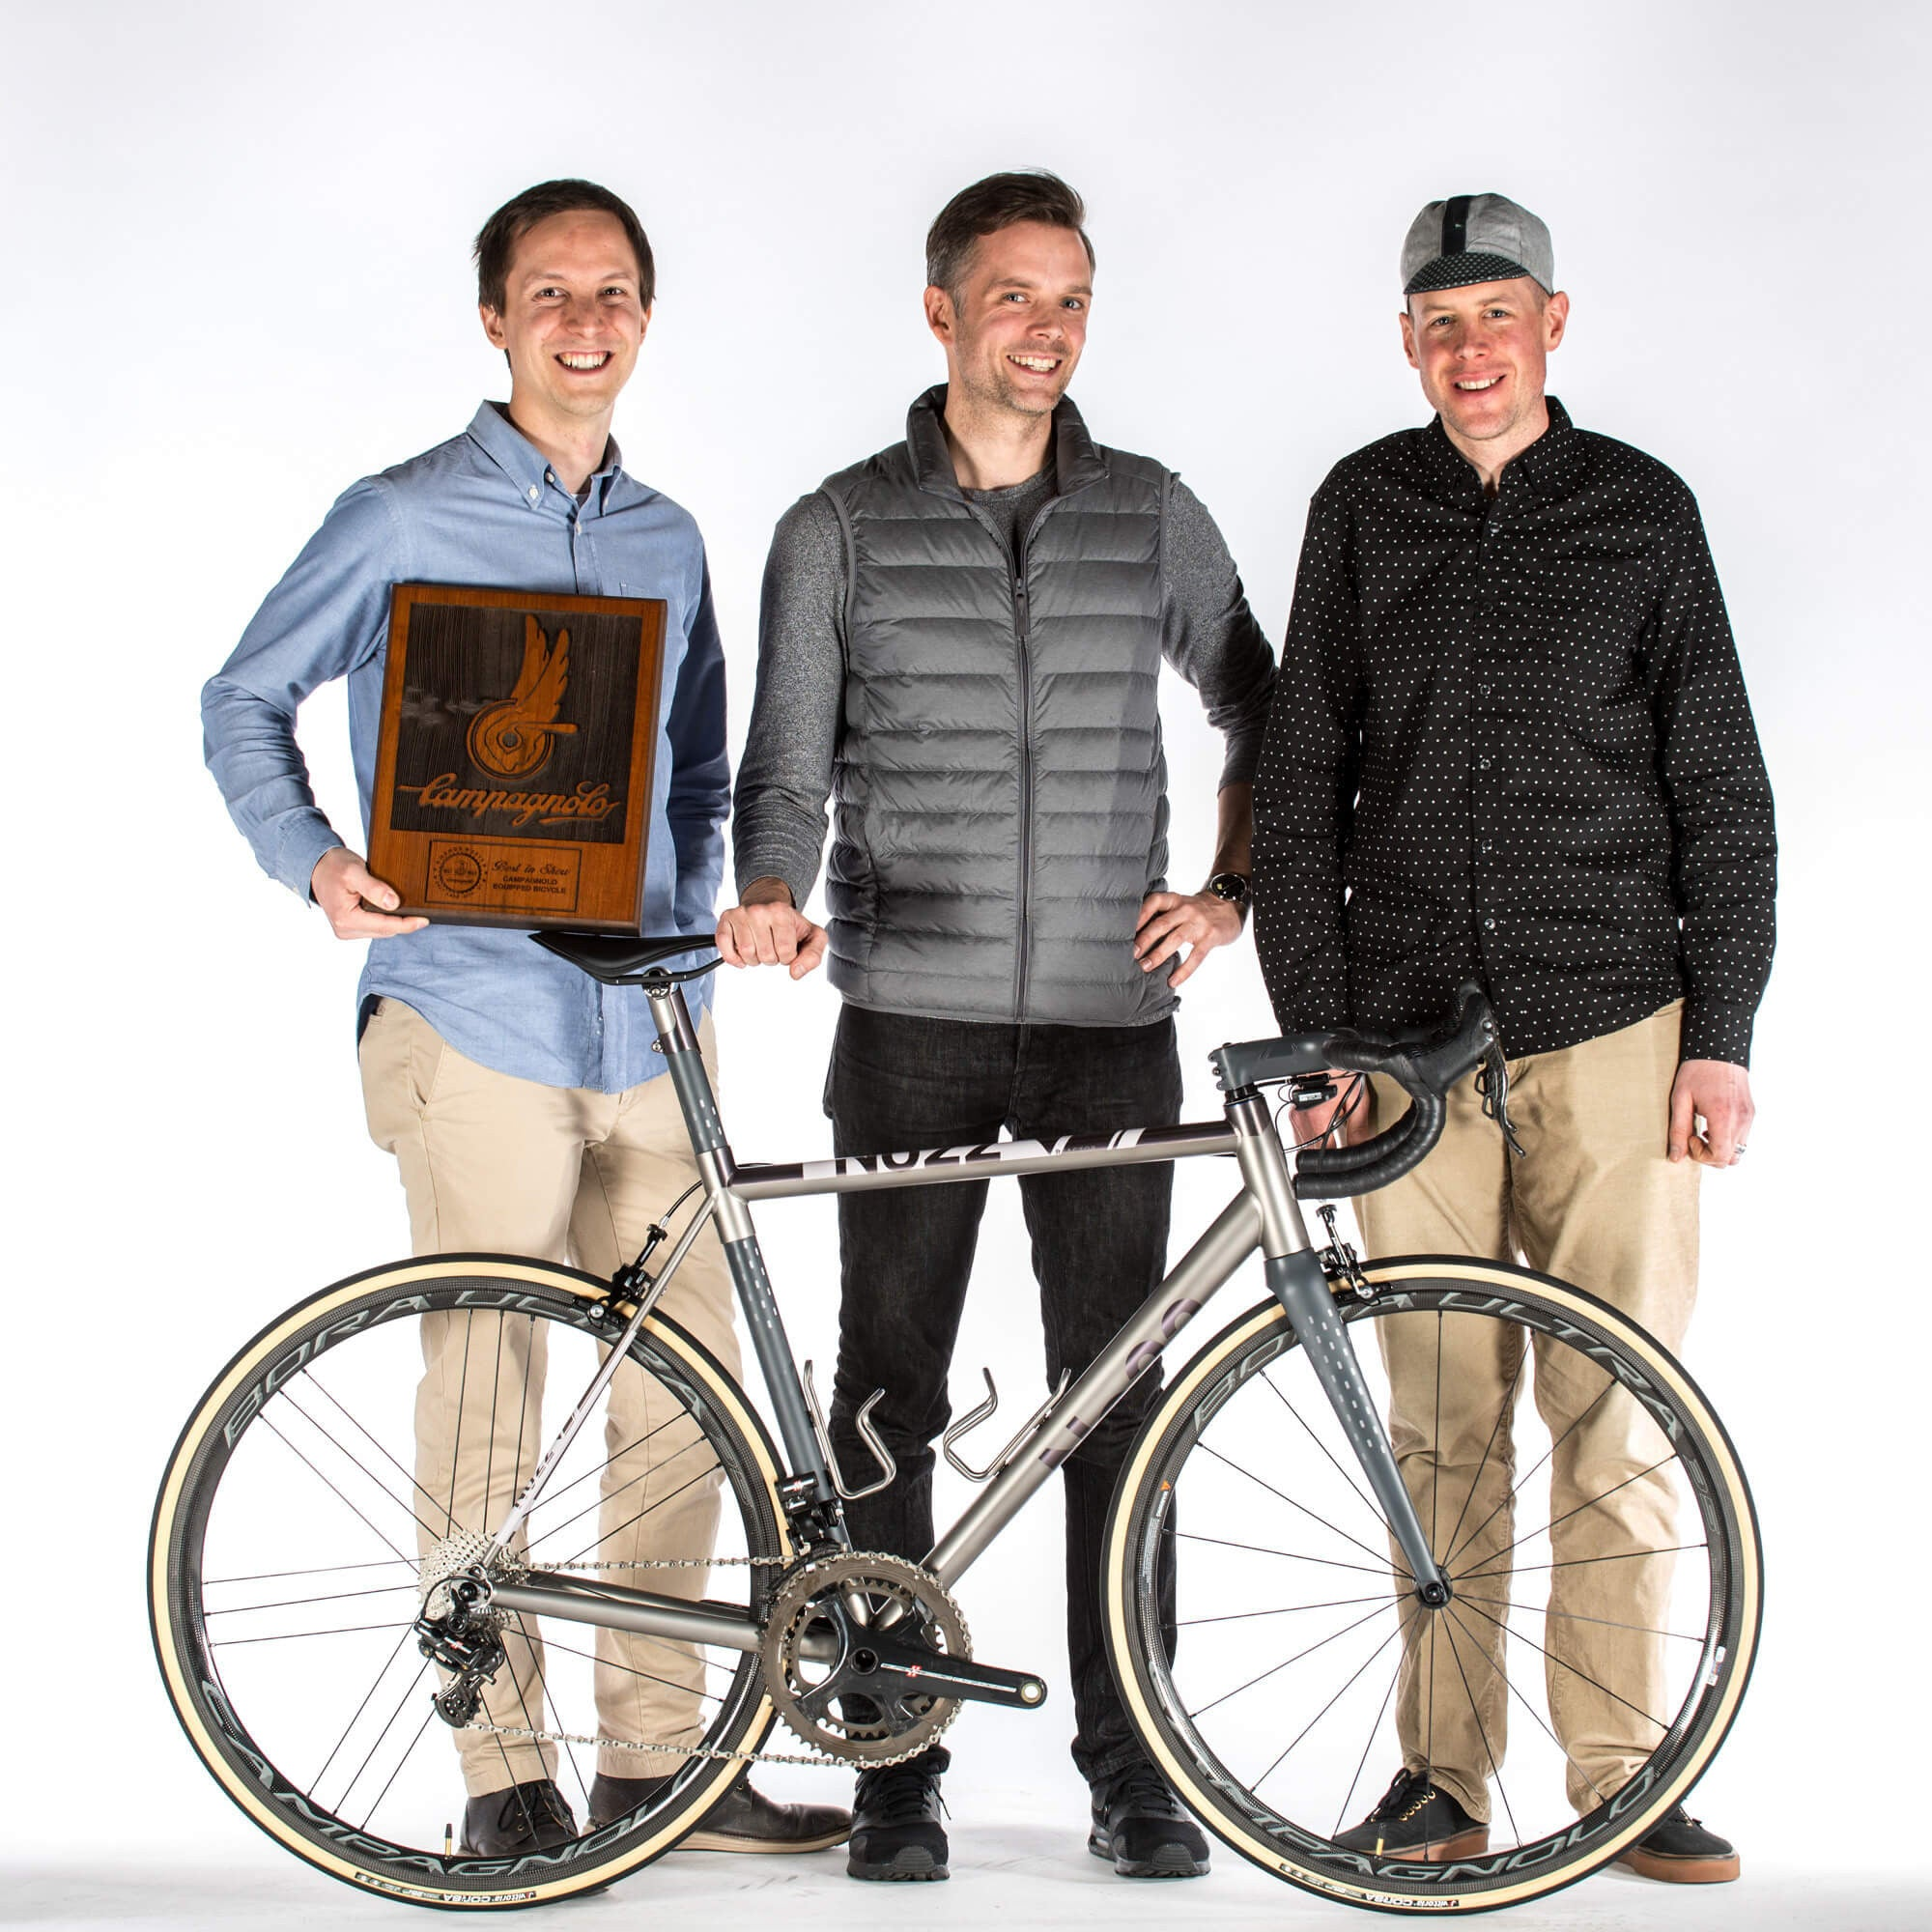 No. 22 NAHBS 2017 Campagnolo Best in Show Award